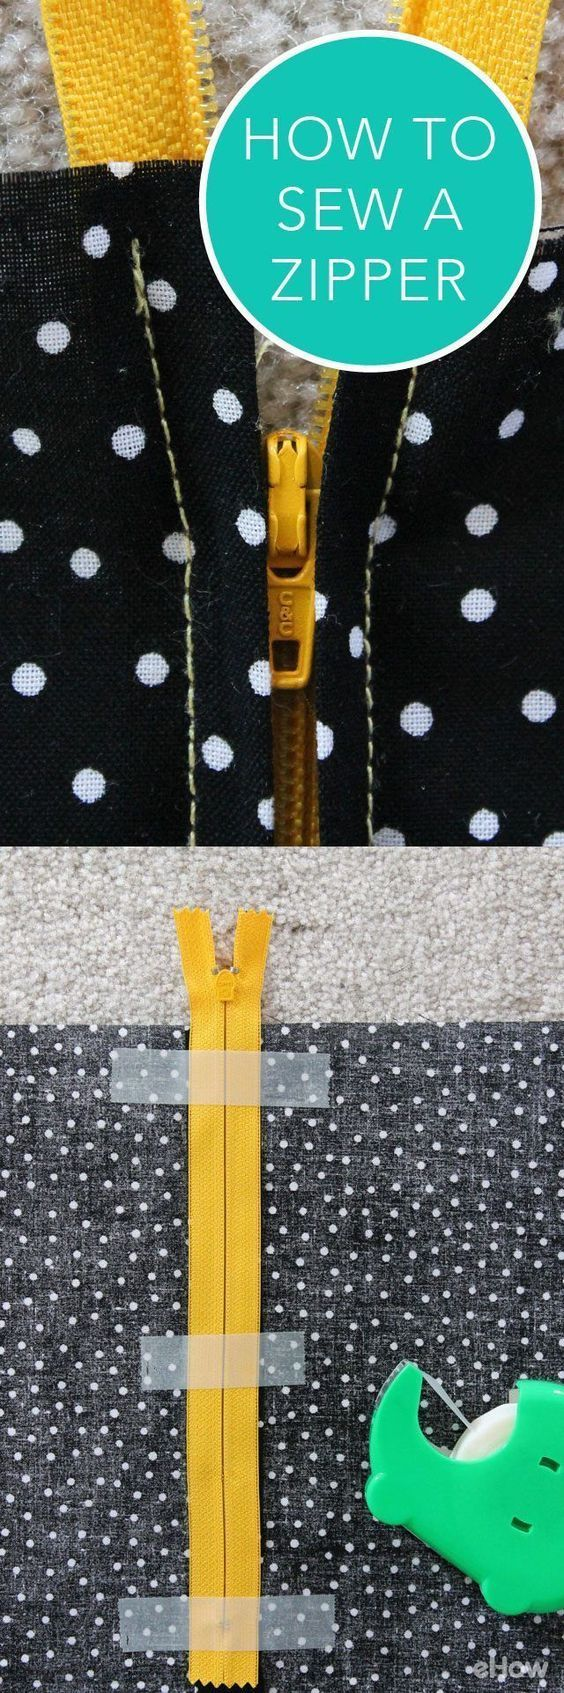 Learning how to sew on a zipper may sound difficult, but with this step-by-step …